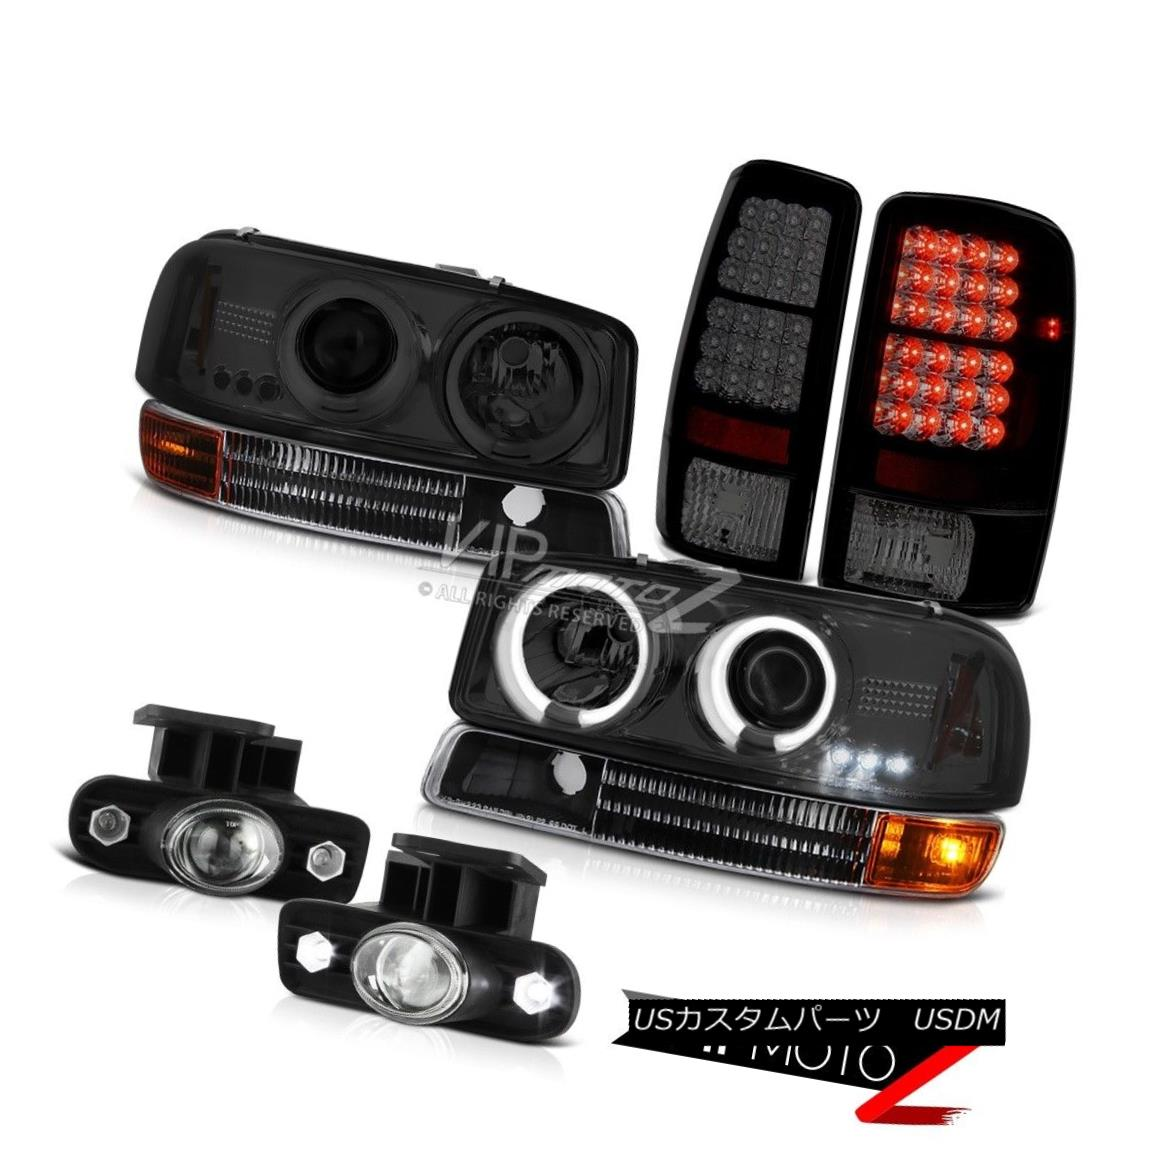 ヘッドライト CCFL Tech Headlights Signal Black LED TailLights FogLights 2000-2006 Yukon XL V8 CCFLテクニカルヘッドライト信号ブラックLEDテールライトFogLights 2000-2006 Yukon XL V8